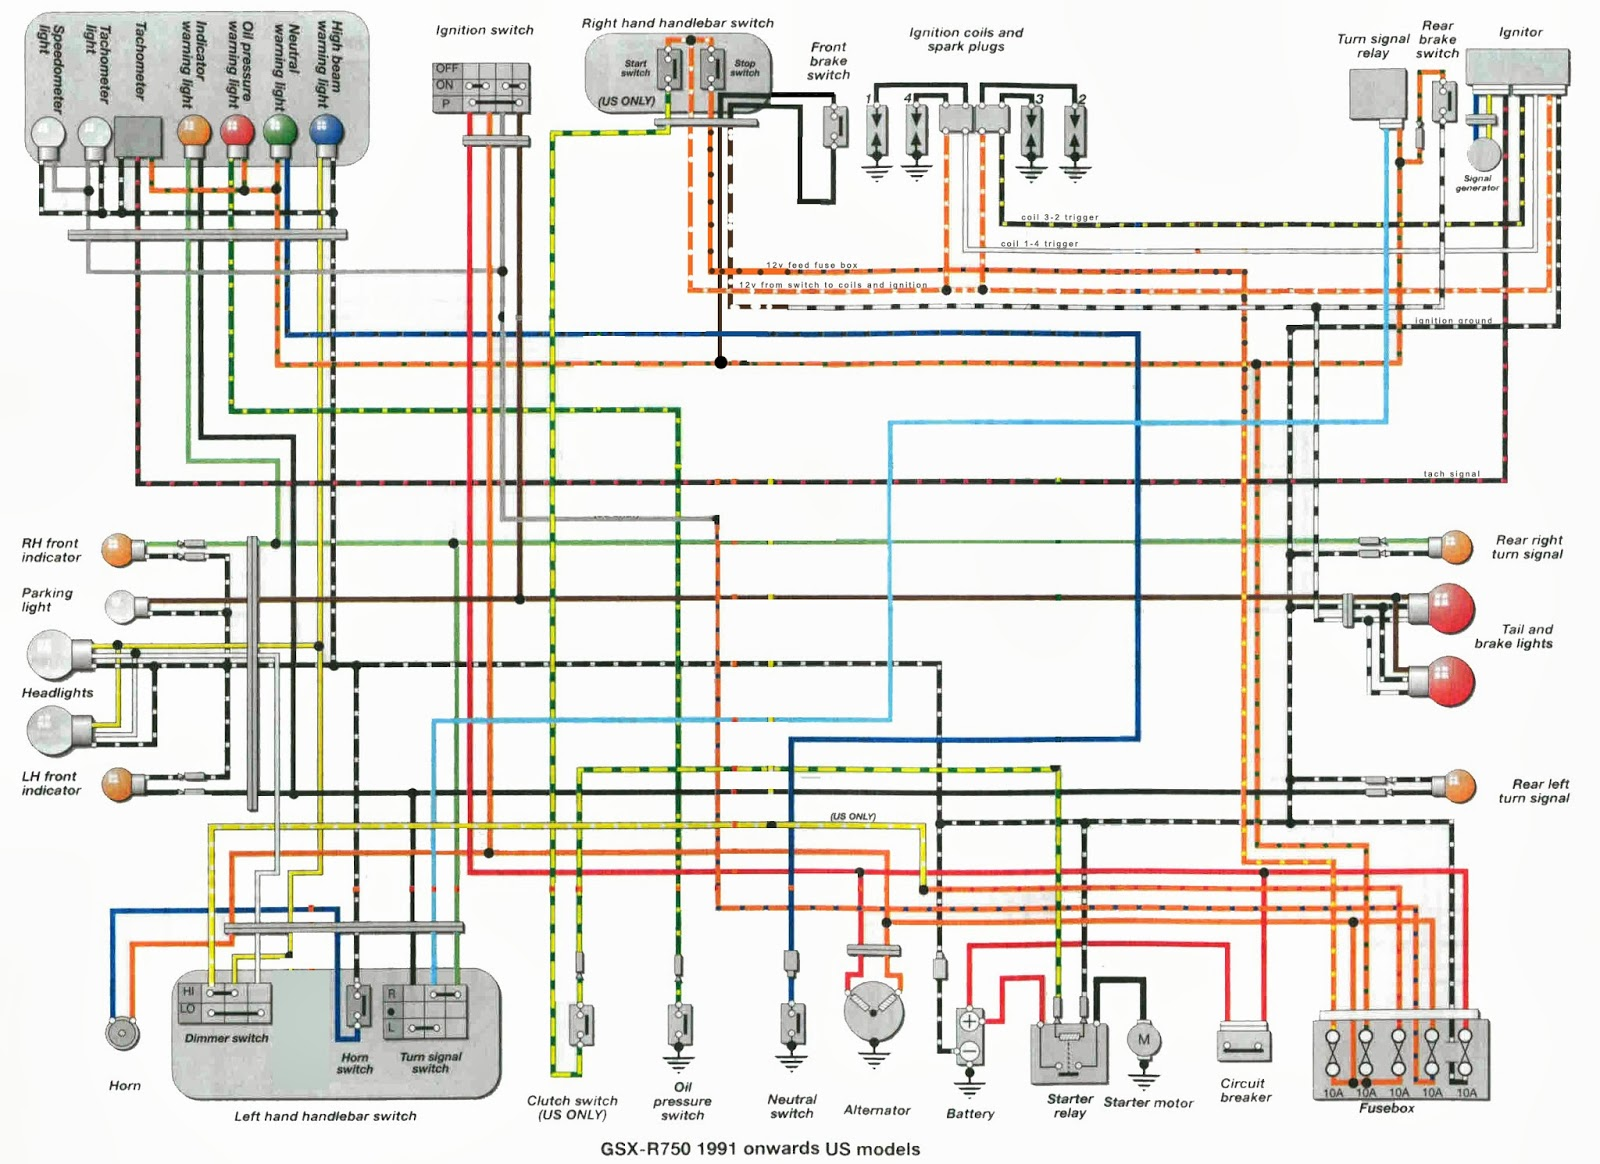 tl r wiring diagram 2006 gsxr 1000 wiring diagram 2006 wiring diagrams online